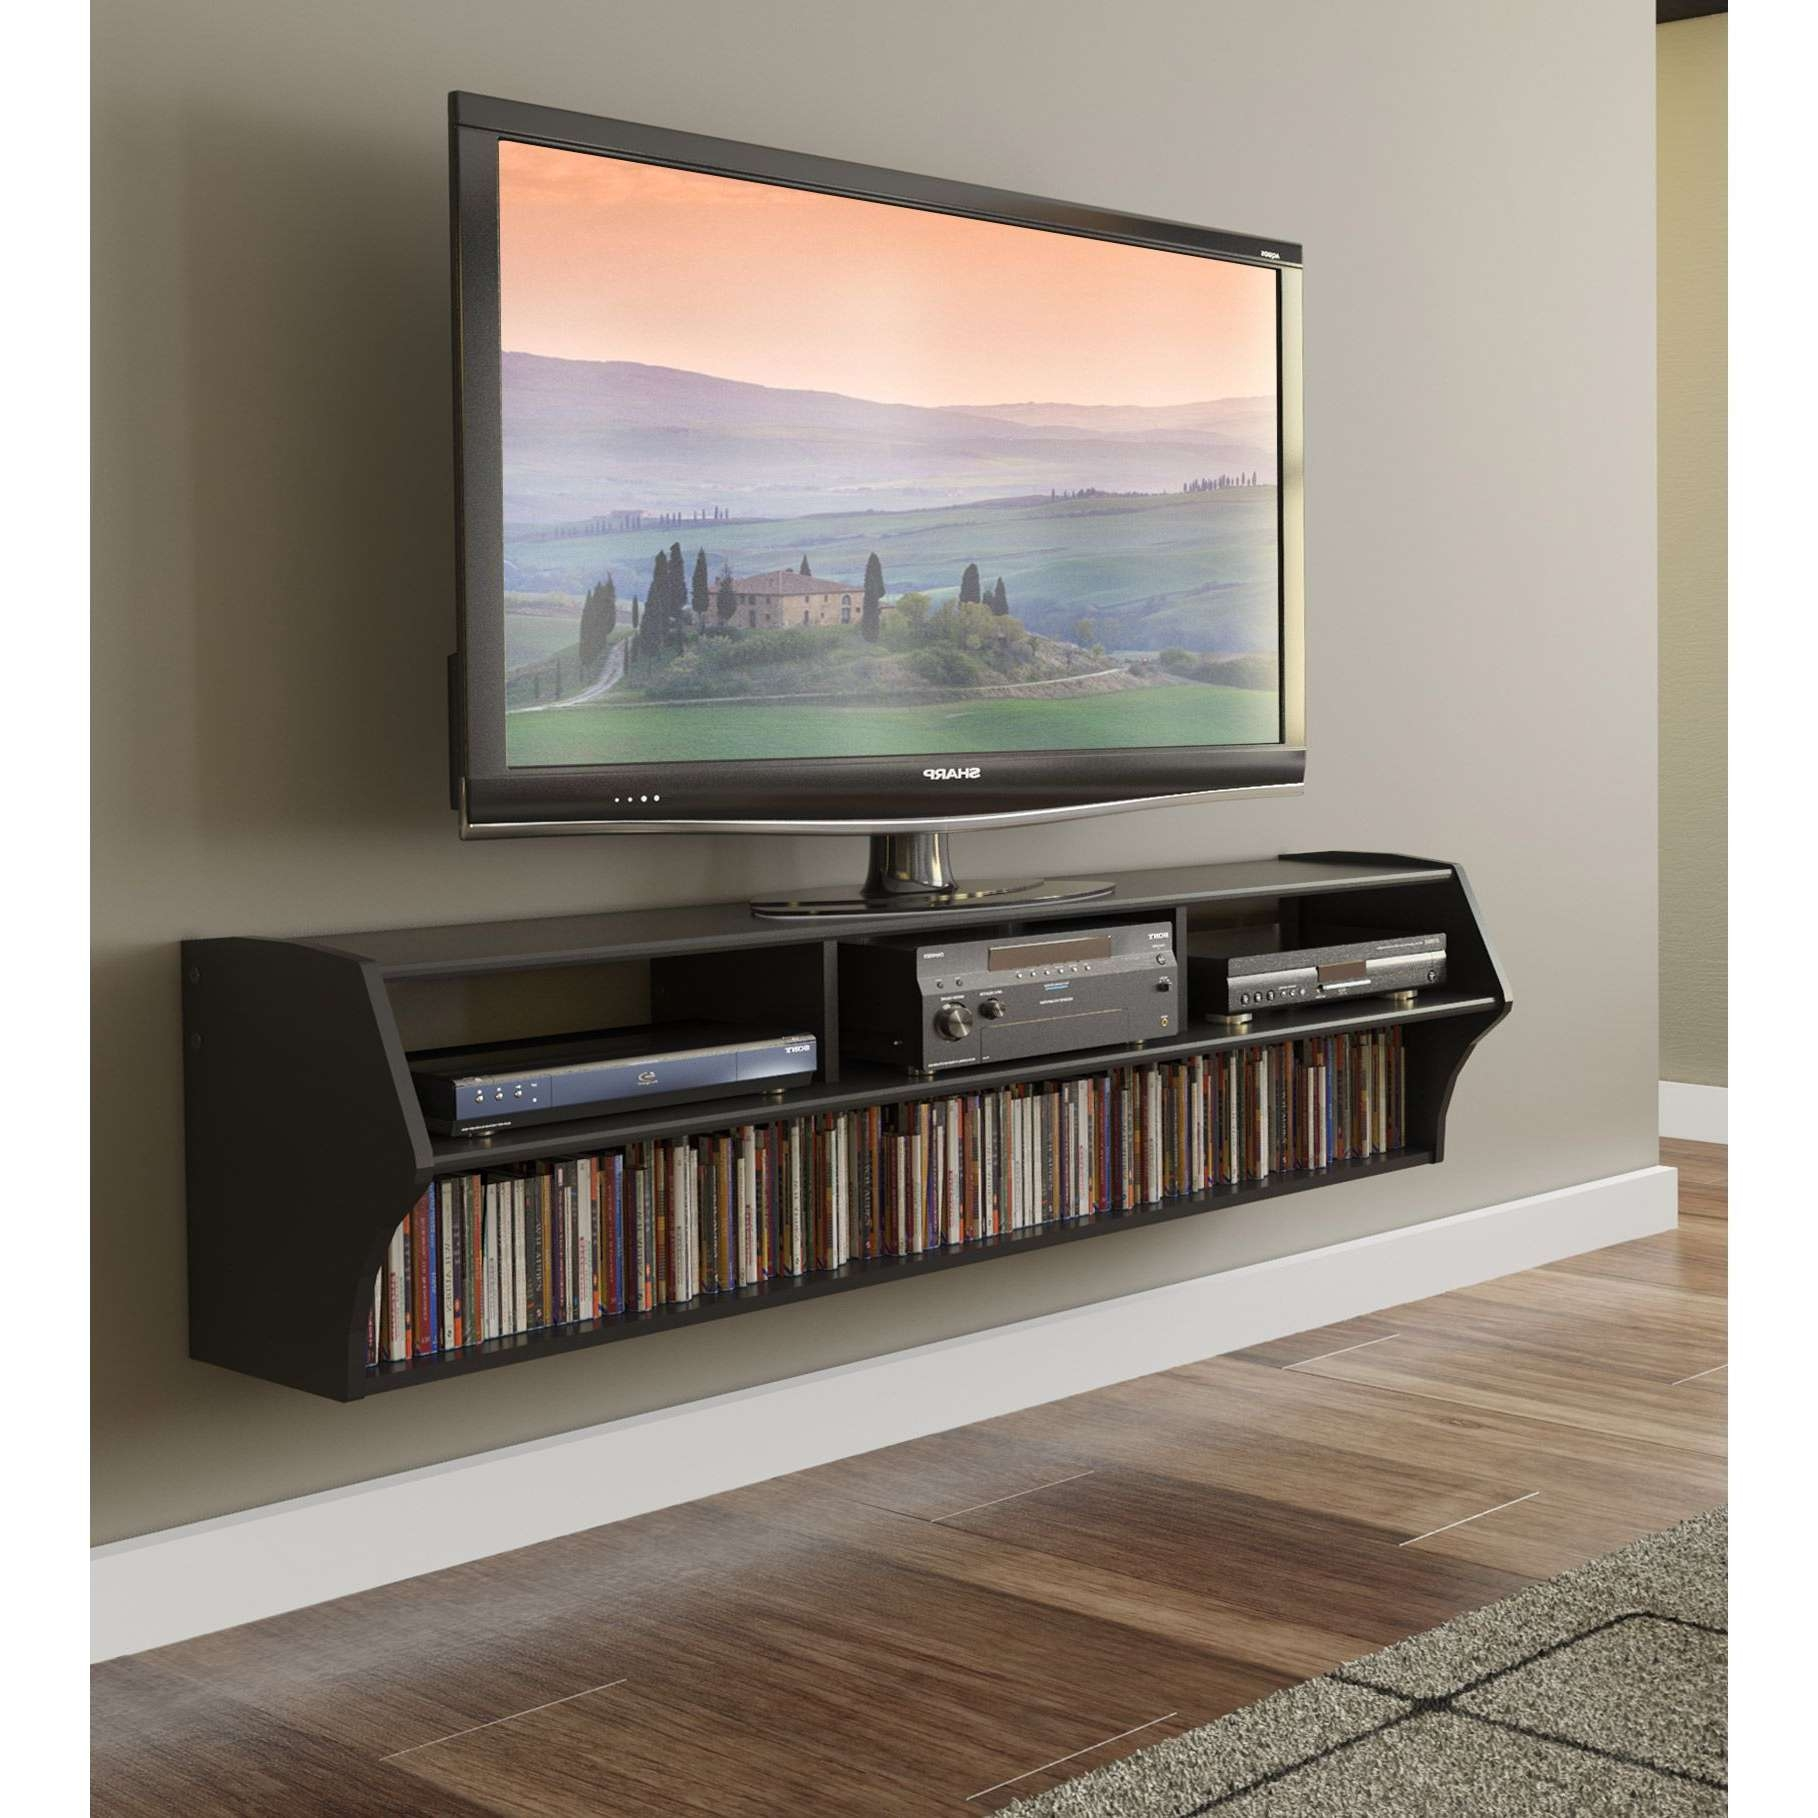 Wall Mounted Tv Entertainment Center Enchanting On Home Decors For Within Floating Glass Tv Stands (View 13 of 15)